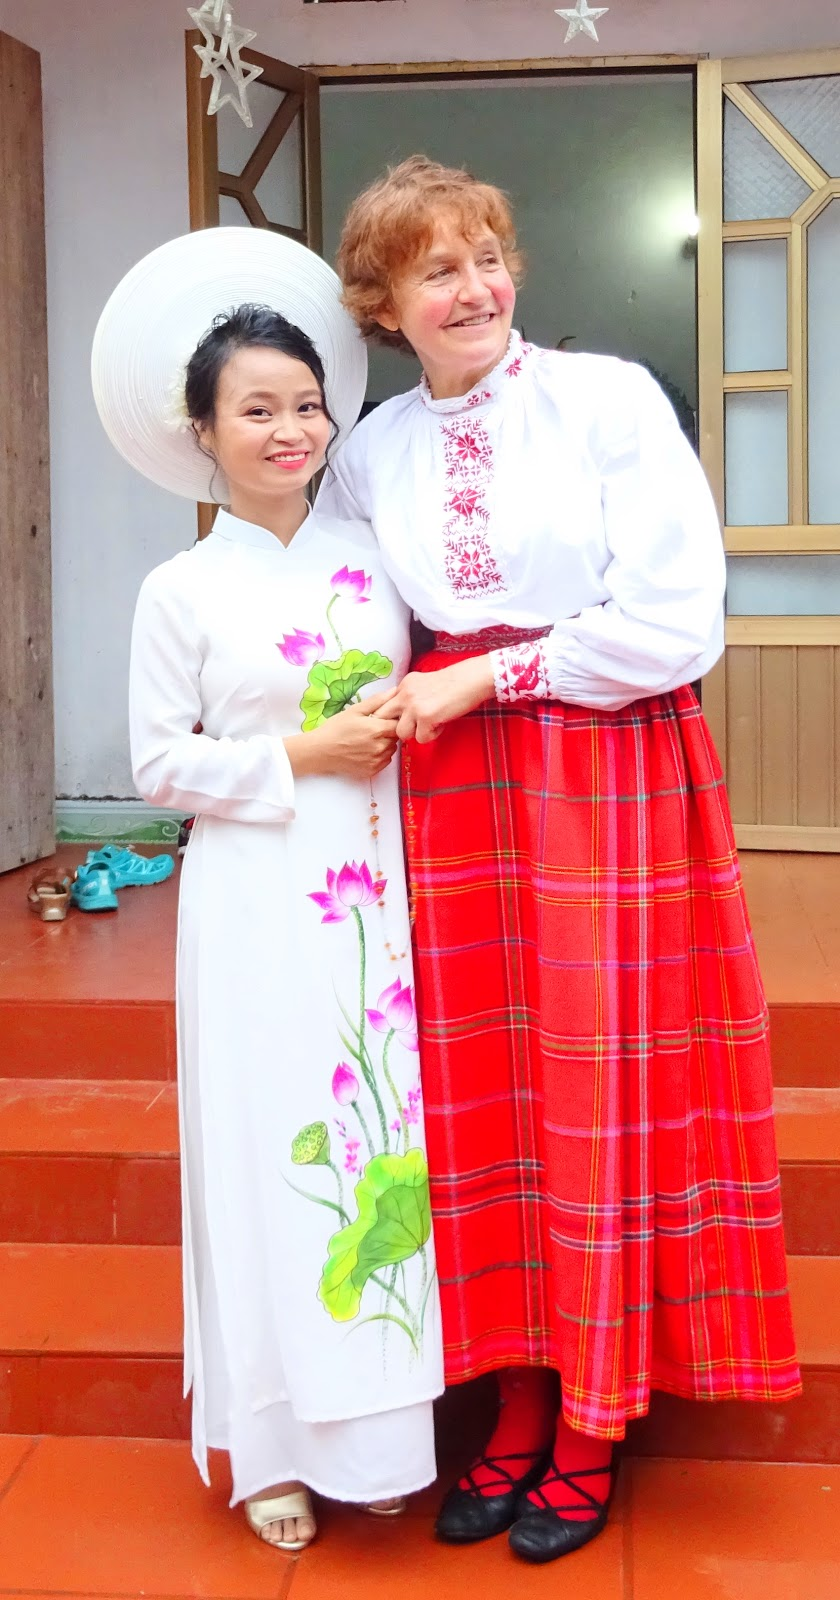 Nguyen Thi Sam and her mother in law in a photo provided by Meigo Mark